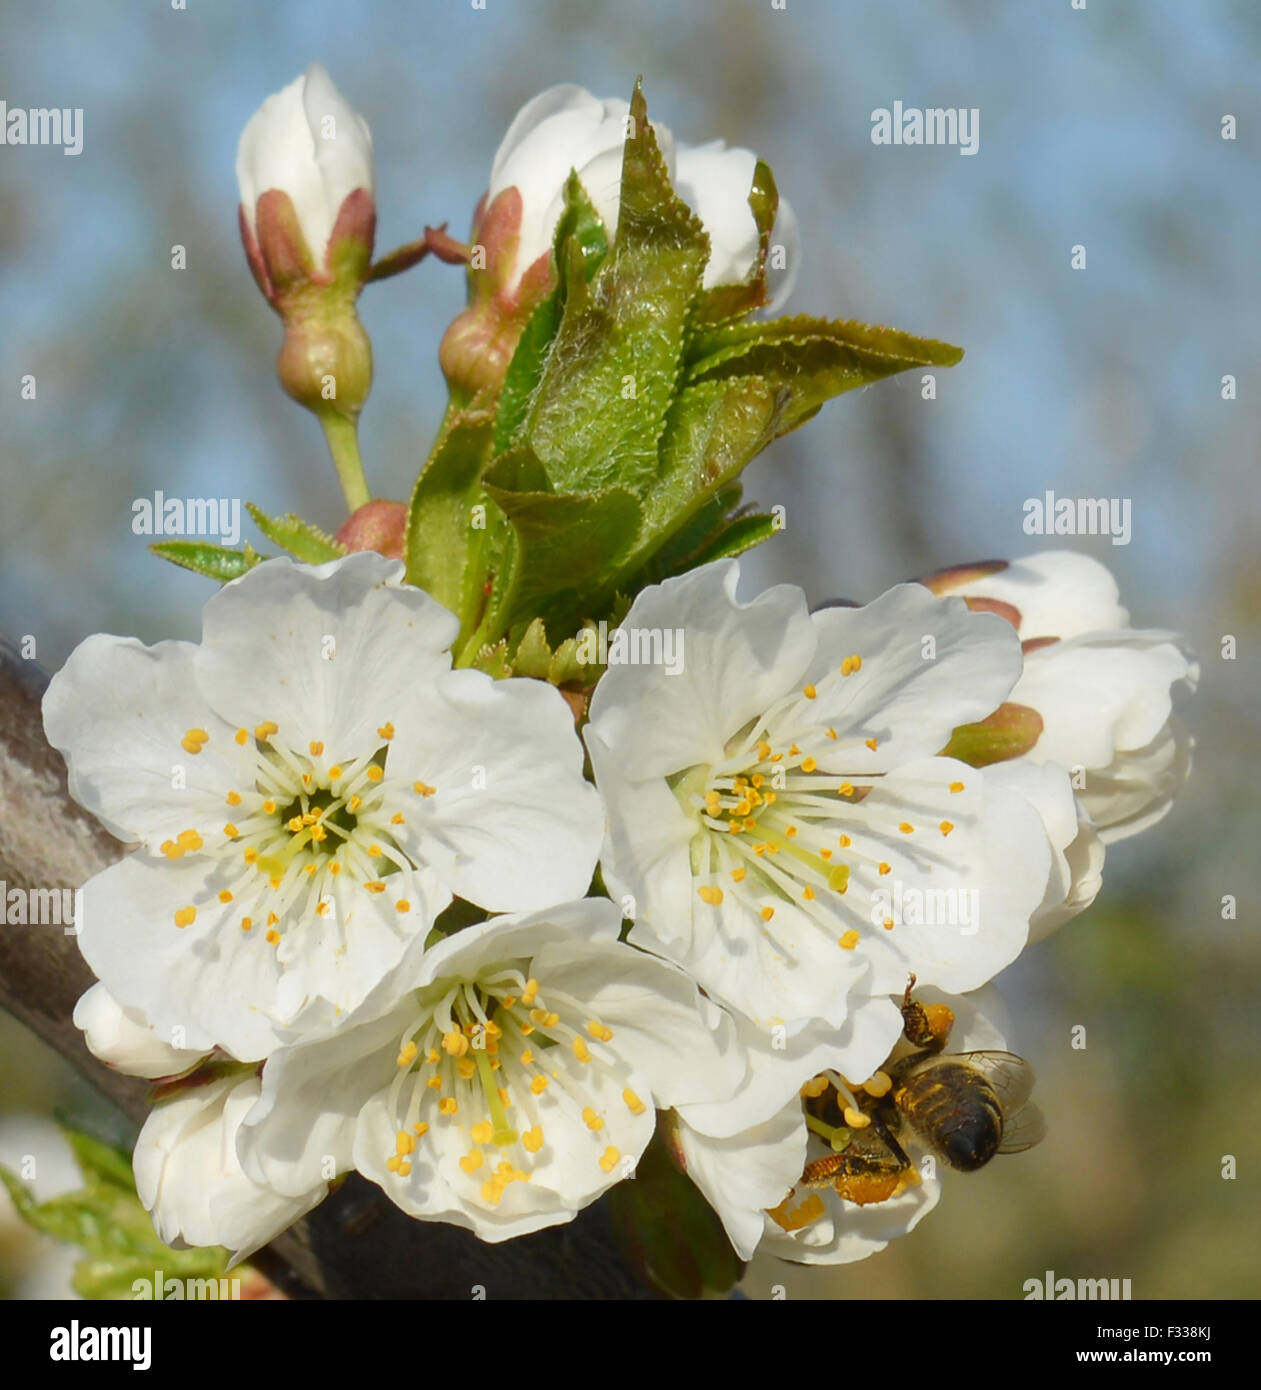 Bee collects pollen from a white flowers Stock Photo